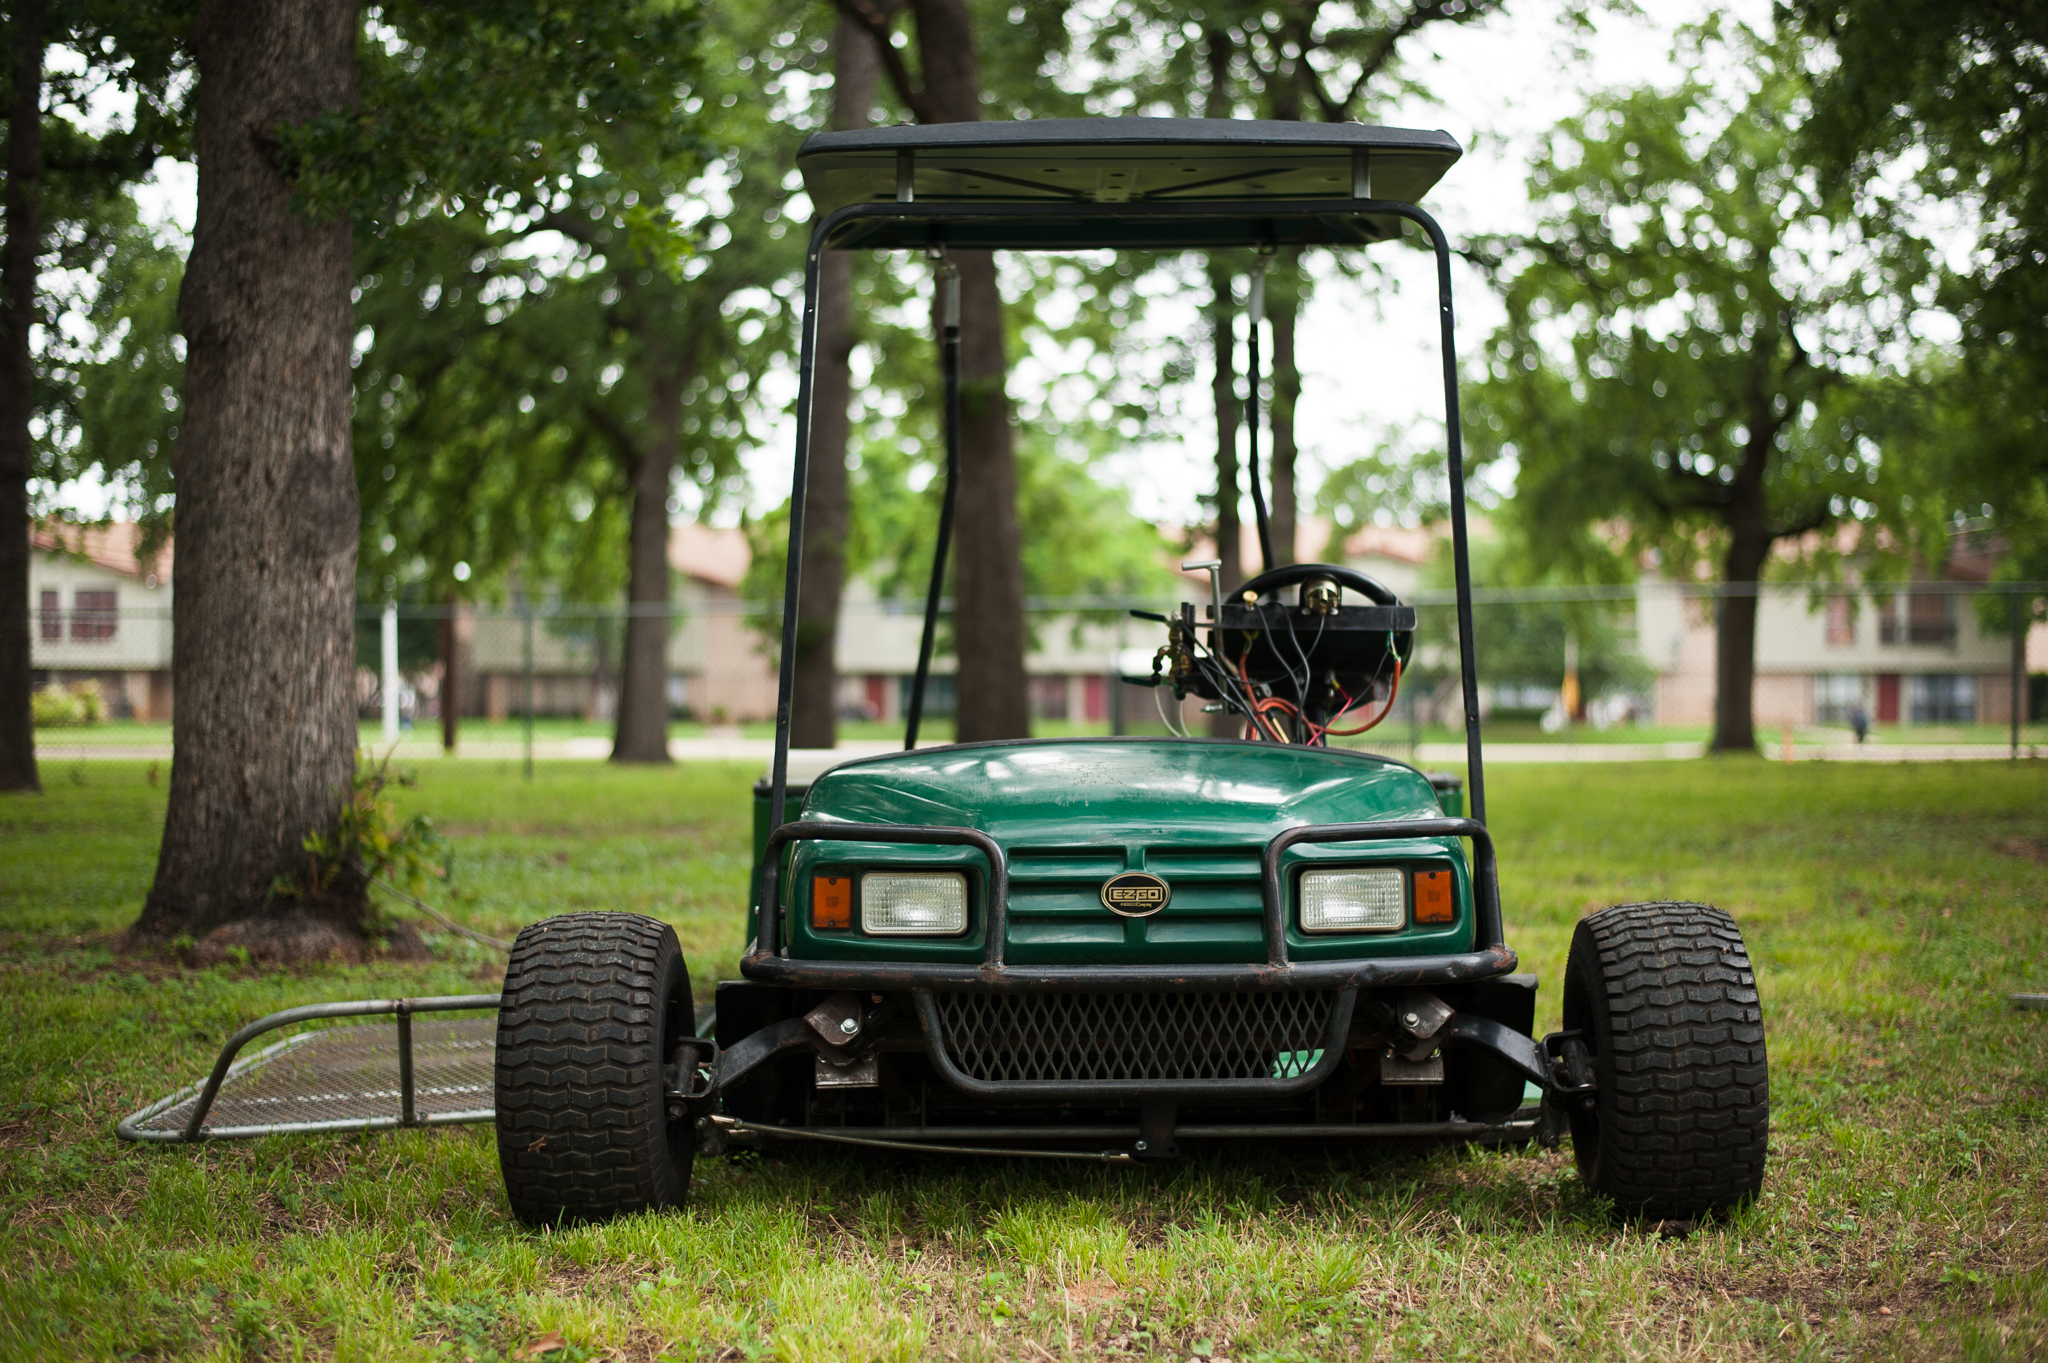 This cart uses hydraulics to lower the cart to the ground for easy access.